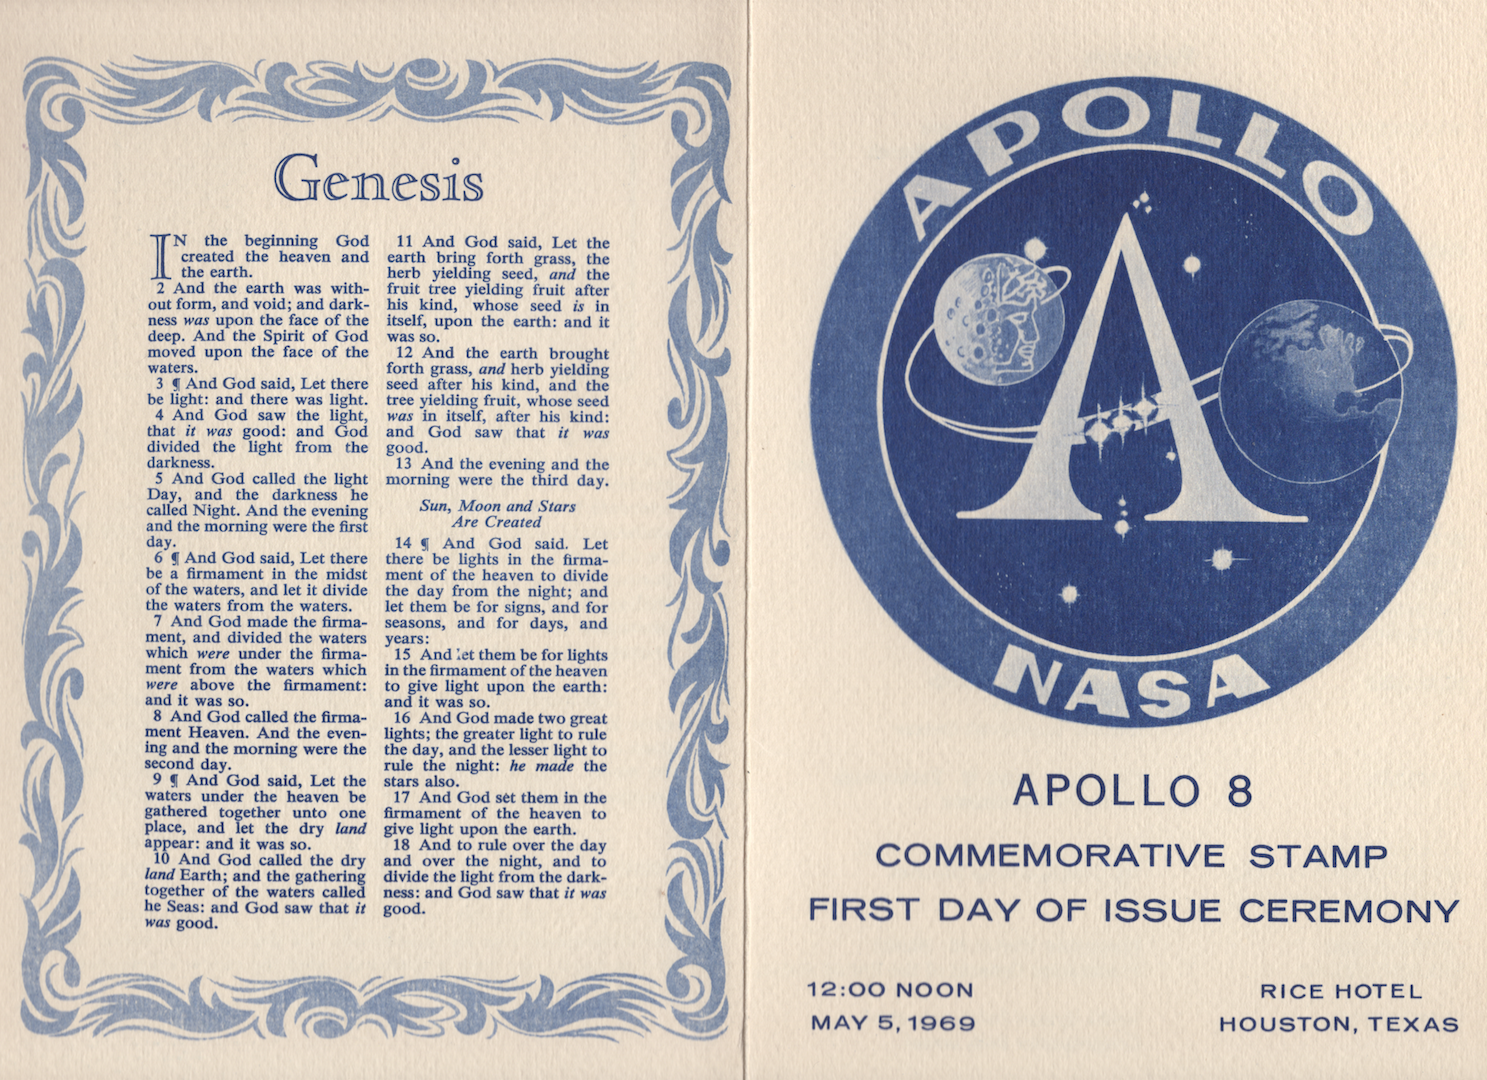 ERM-1969-EPHEMERA-APOLLO_8-STAMP-CEREMONY_GUIDE-OUTSIDE.png